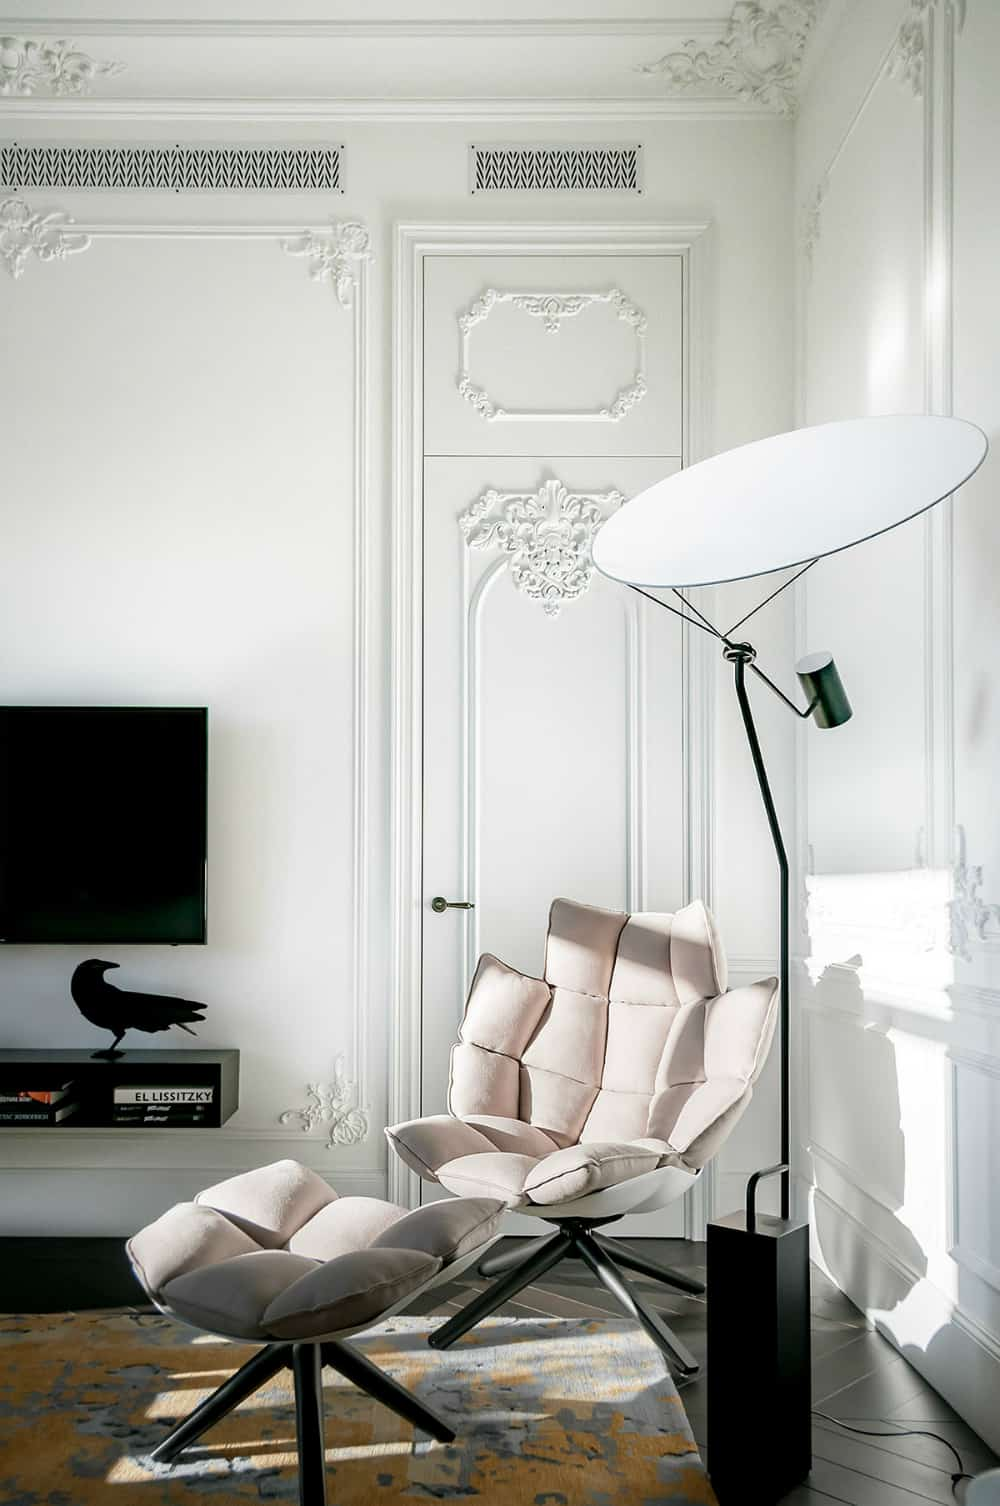 Modern lounge chair looks inviting